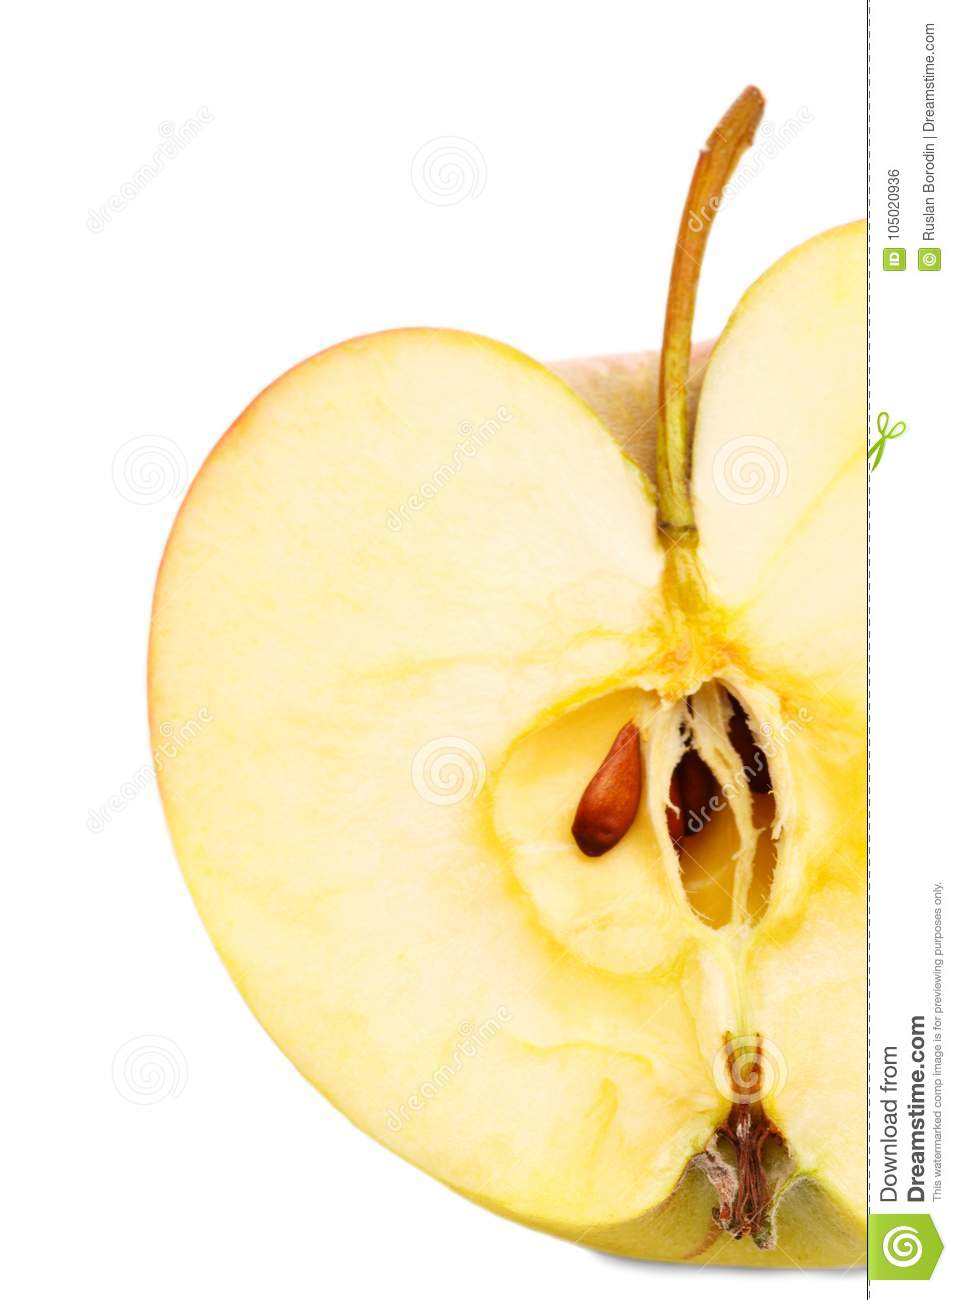 Close Up Of An Apple In A Cut Shape Isolated On A White